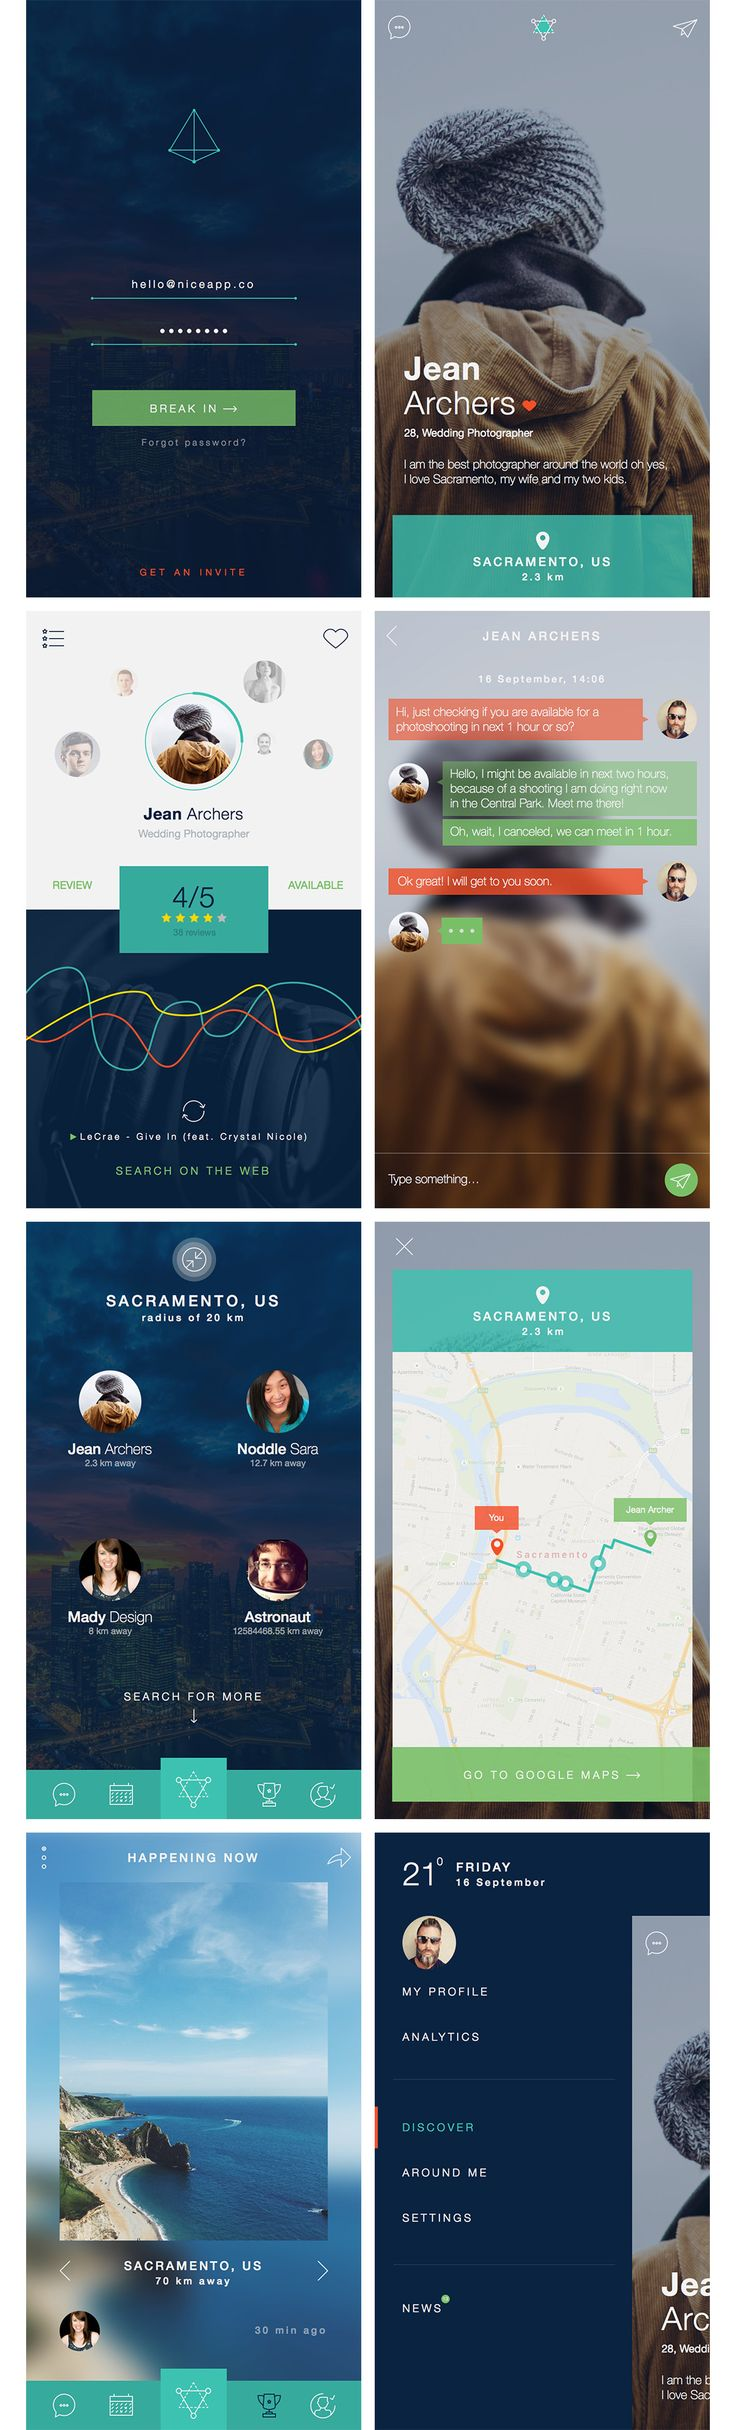 Free App UI Kit – 8 screens for Photoshop and Sketch